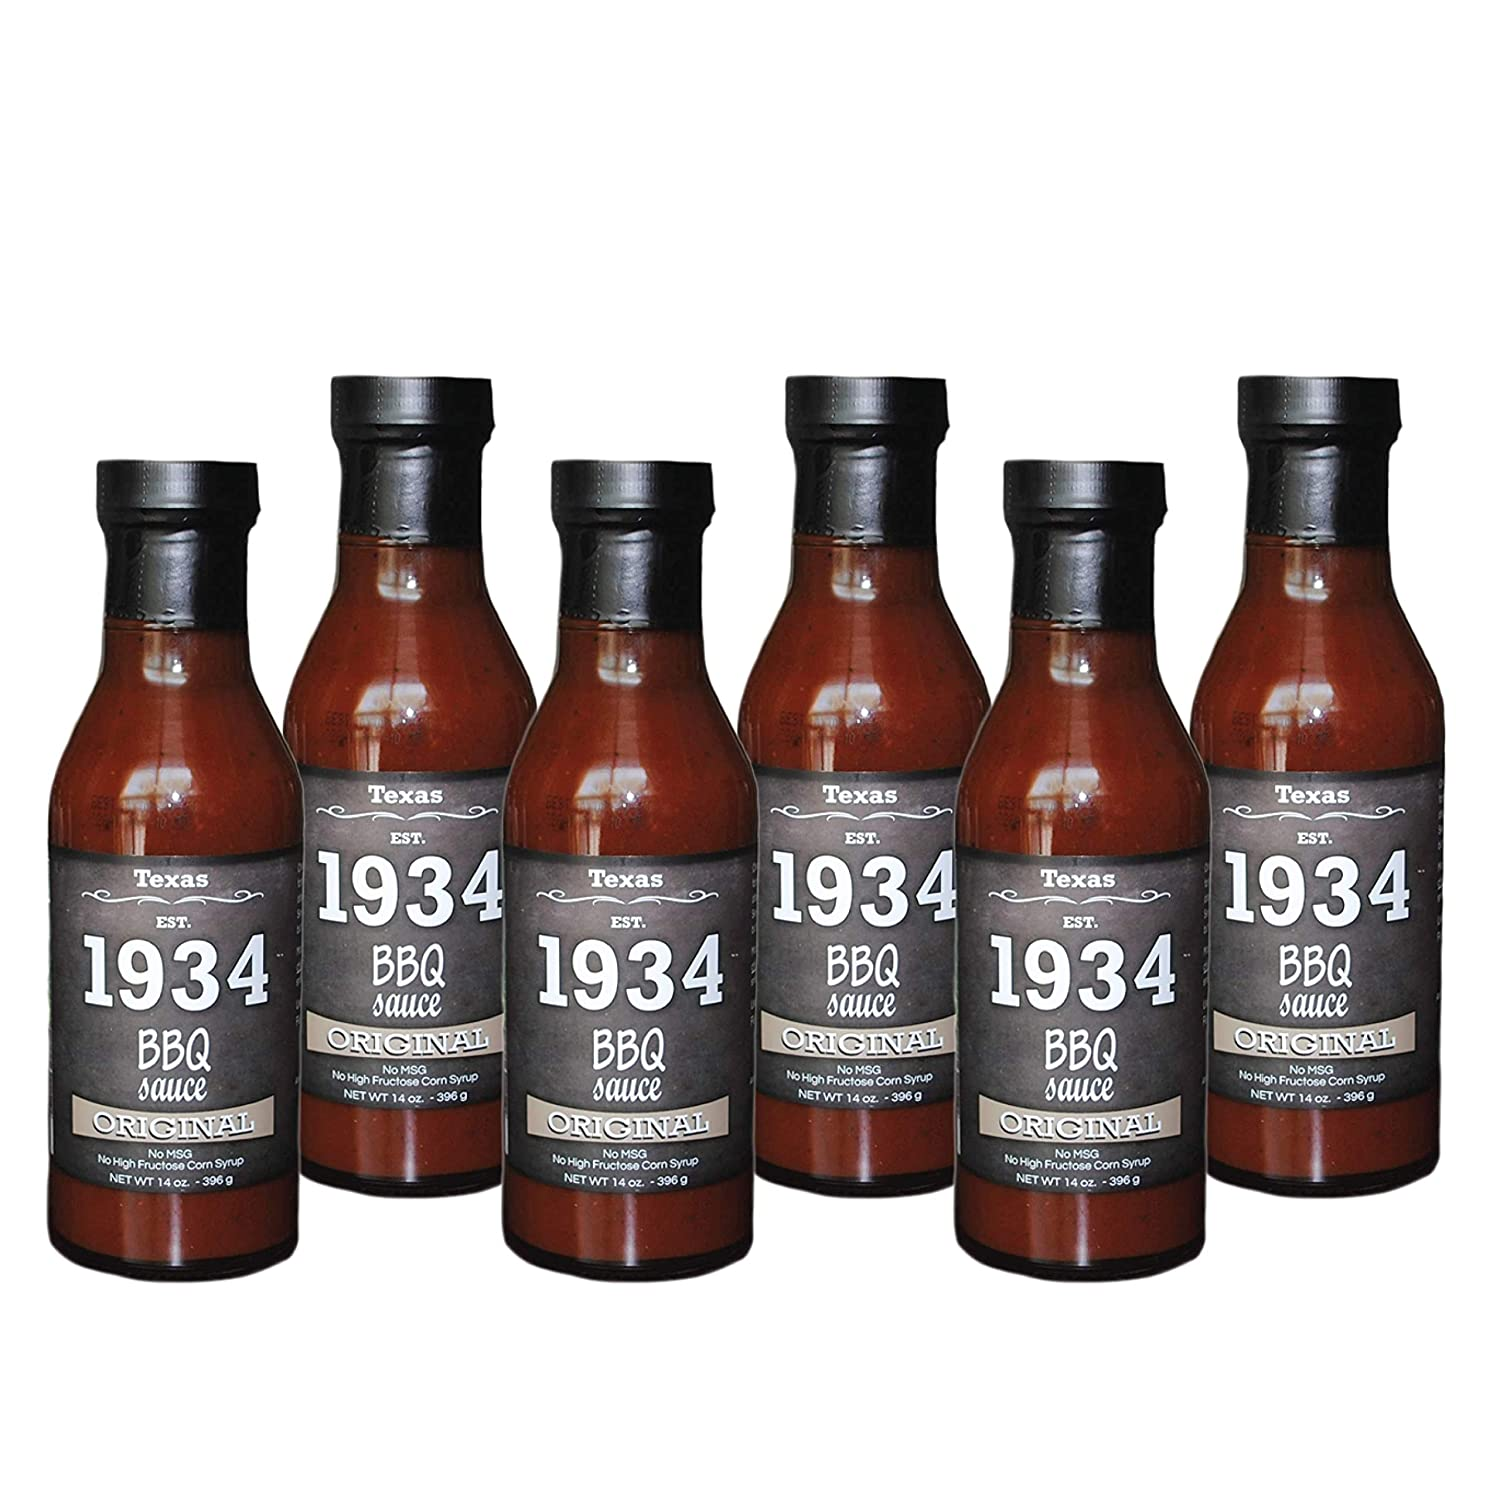 1934 Texas BBQ Sauce - Original 14 OZ. | Texas Style Classic BBQ Flavor with Black Pepper and Apple Cider Vinager | No Preservatives or High Fructose Corn Syrup I Great For Grilling | 6 Pack